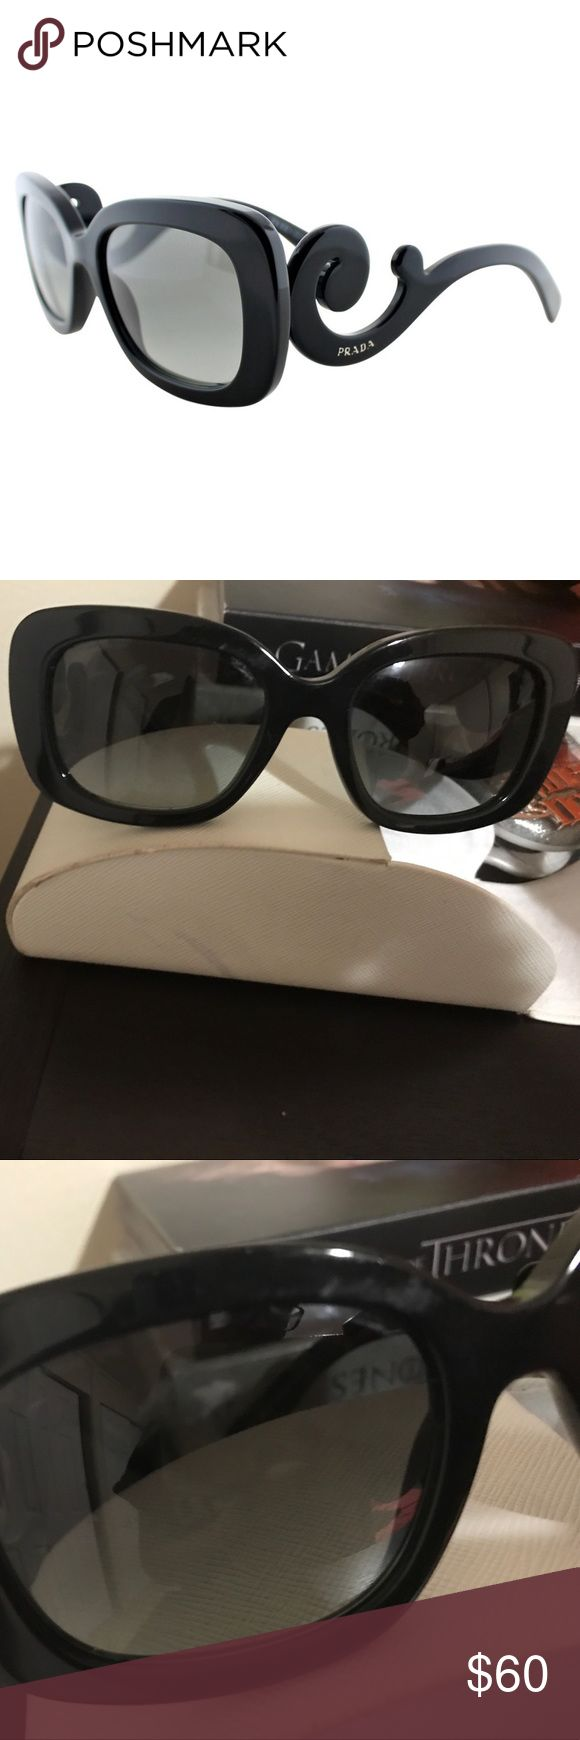 Prada baroque sunglasses Prada baroque sunglasses. Scratch on left lens and part of frame. Everything else in great condition. Comes with original case. I have another listing with another pair of these sunglasses in perfect condition as well. Prada Accessories Sunglasses